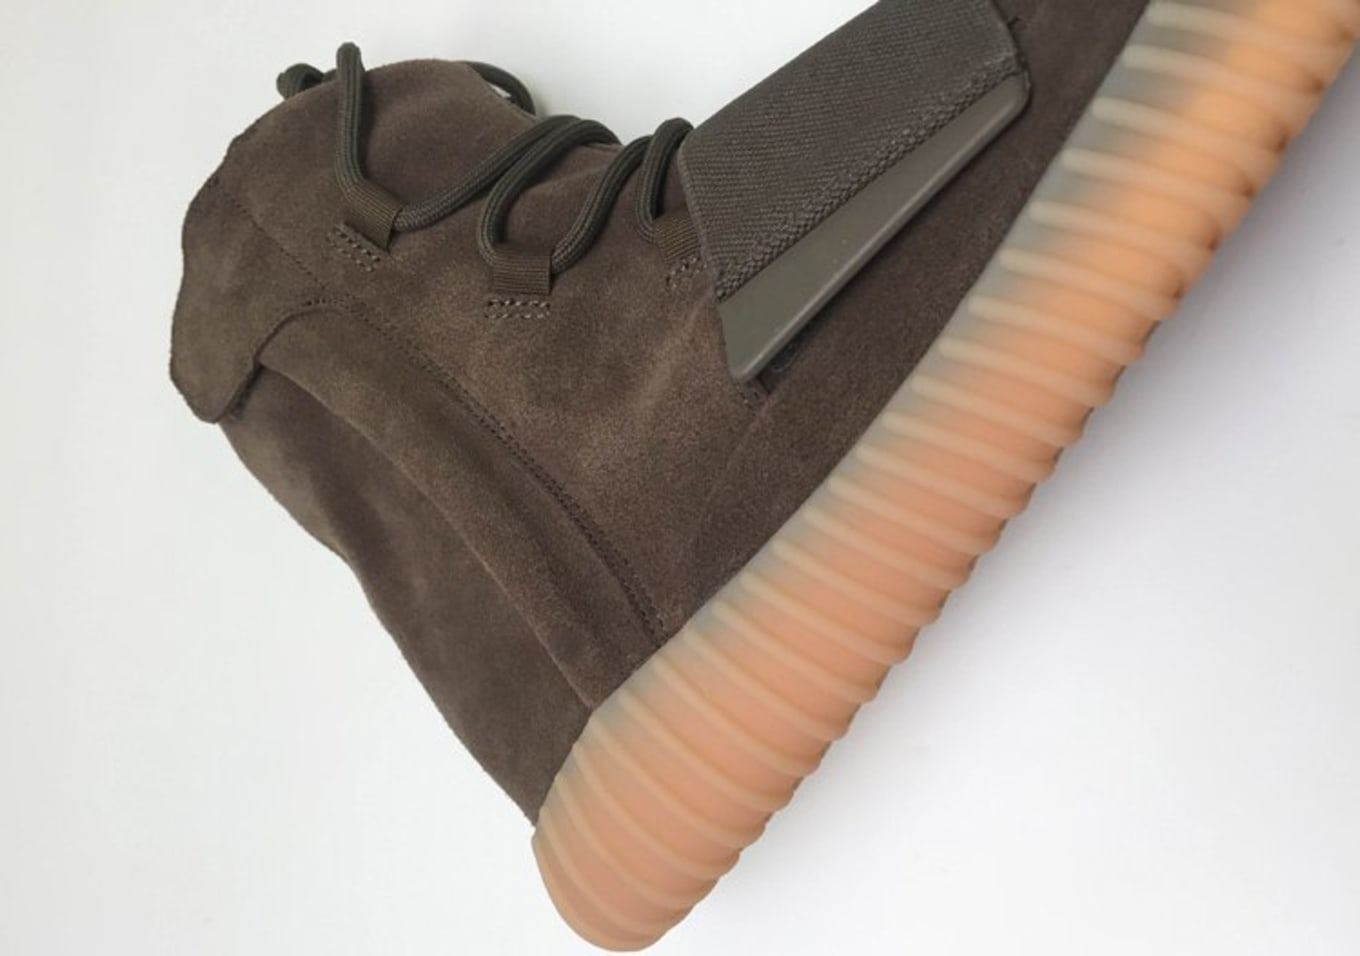 Adidas Yeezy 750 Boost Chocolate Unboxing | Sole Collector